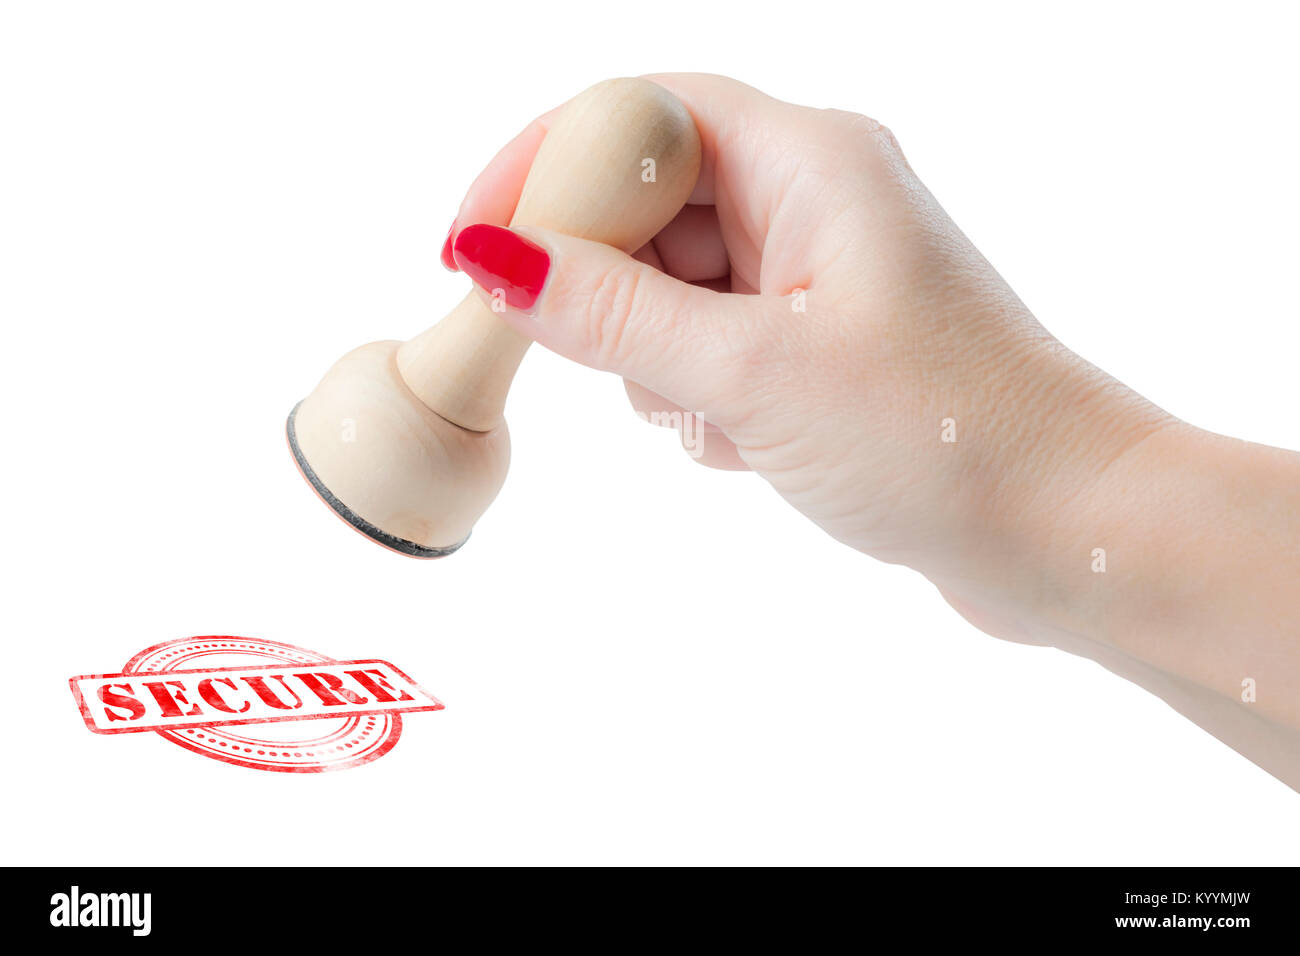 Hand holding a rubber stamp with the word secure isolated on a white background - Stock Image